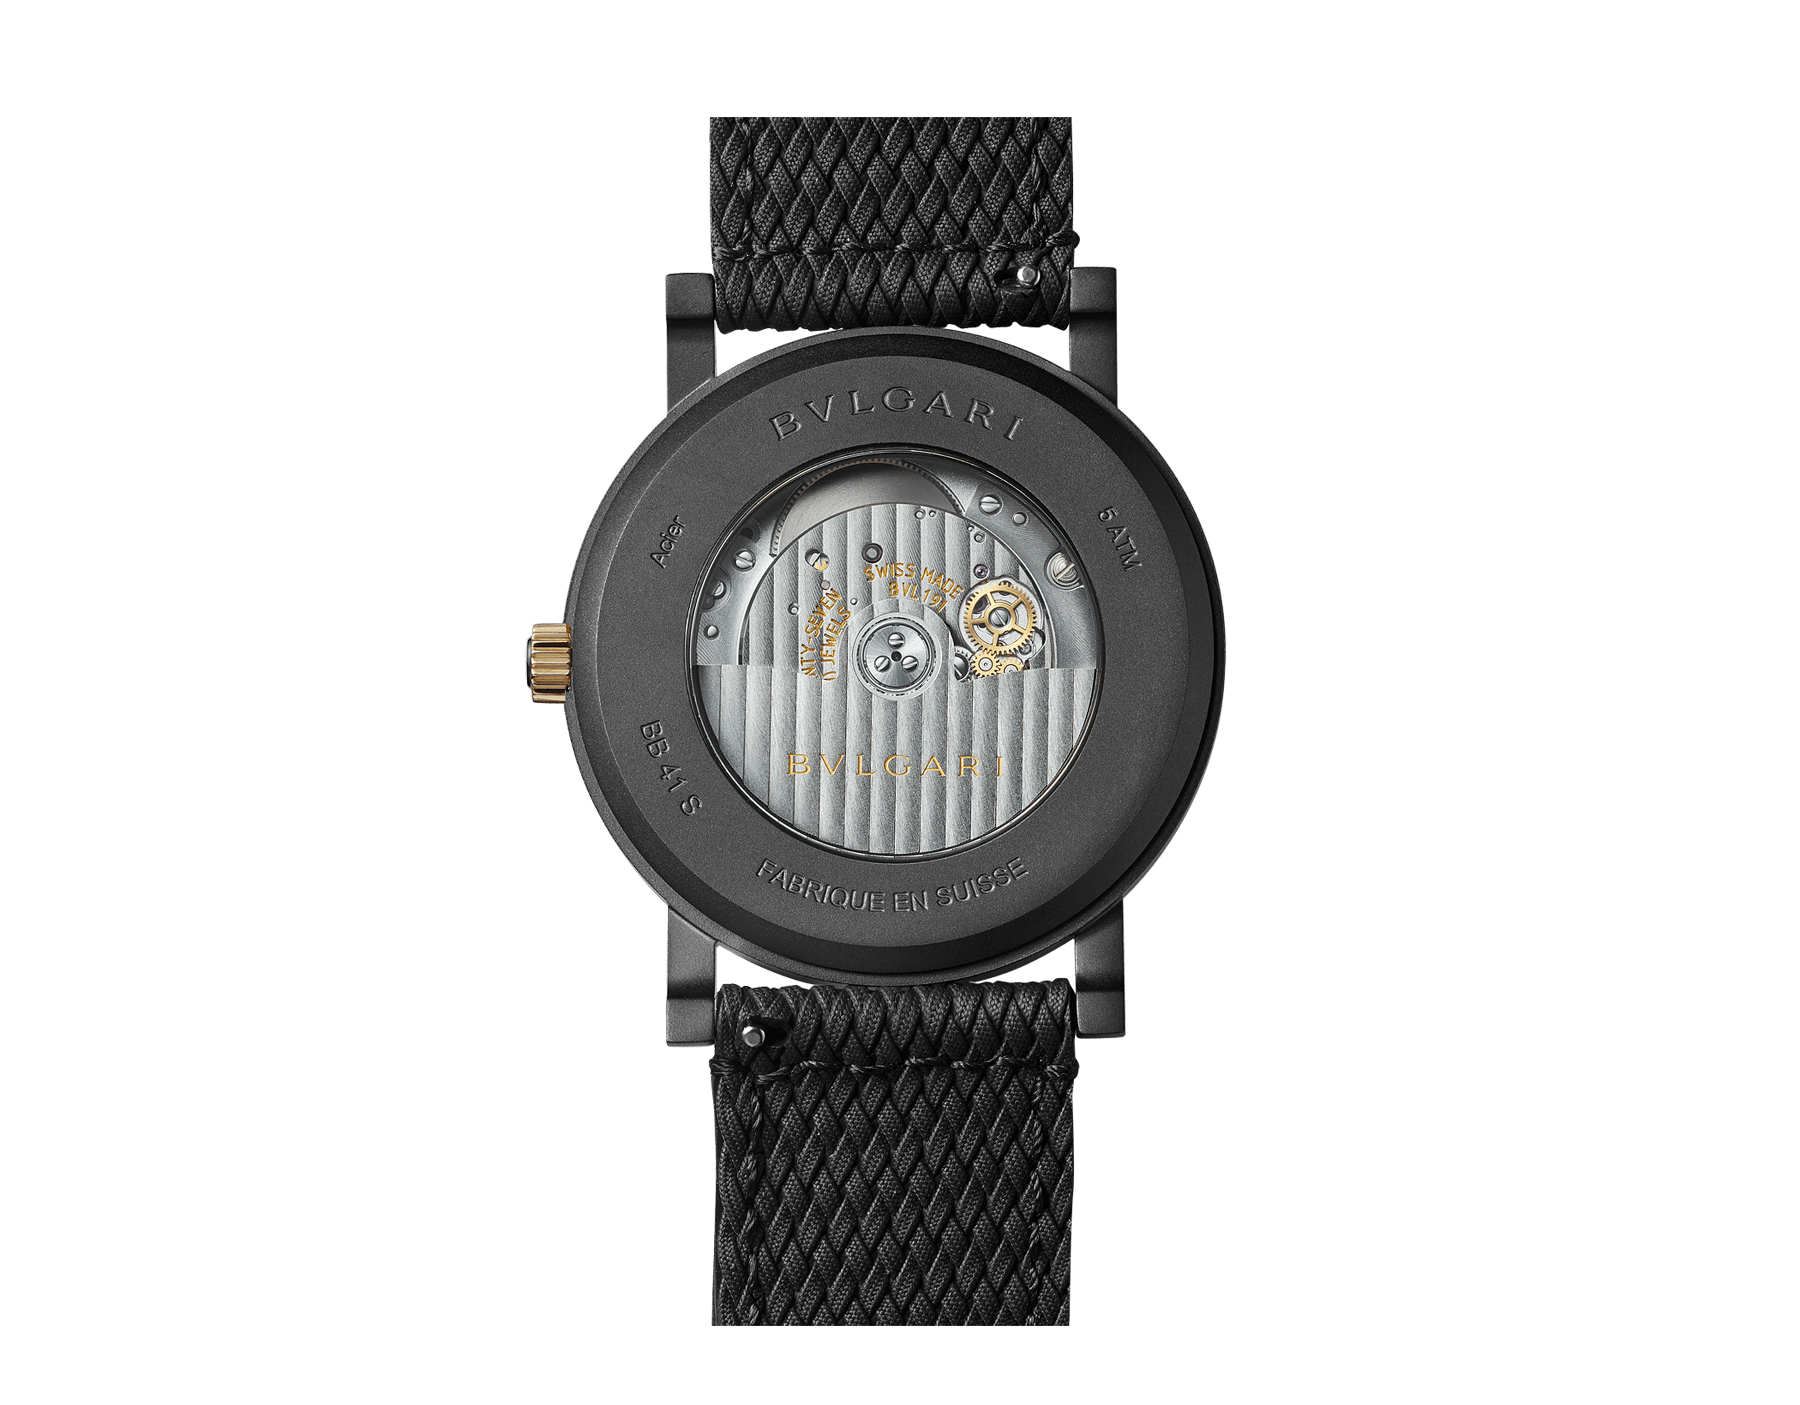 BVLGARI BVLGARI Solotempo watch with mechanical manufacture movement, automatic winding and date, stainless steel case treated with black Diamond Like Carbon and bezel engraved with double logo, black dial and black rubber bracelet 102929 image 4